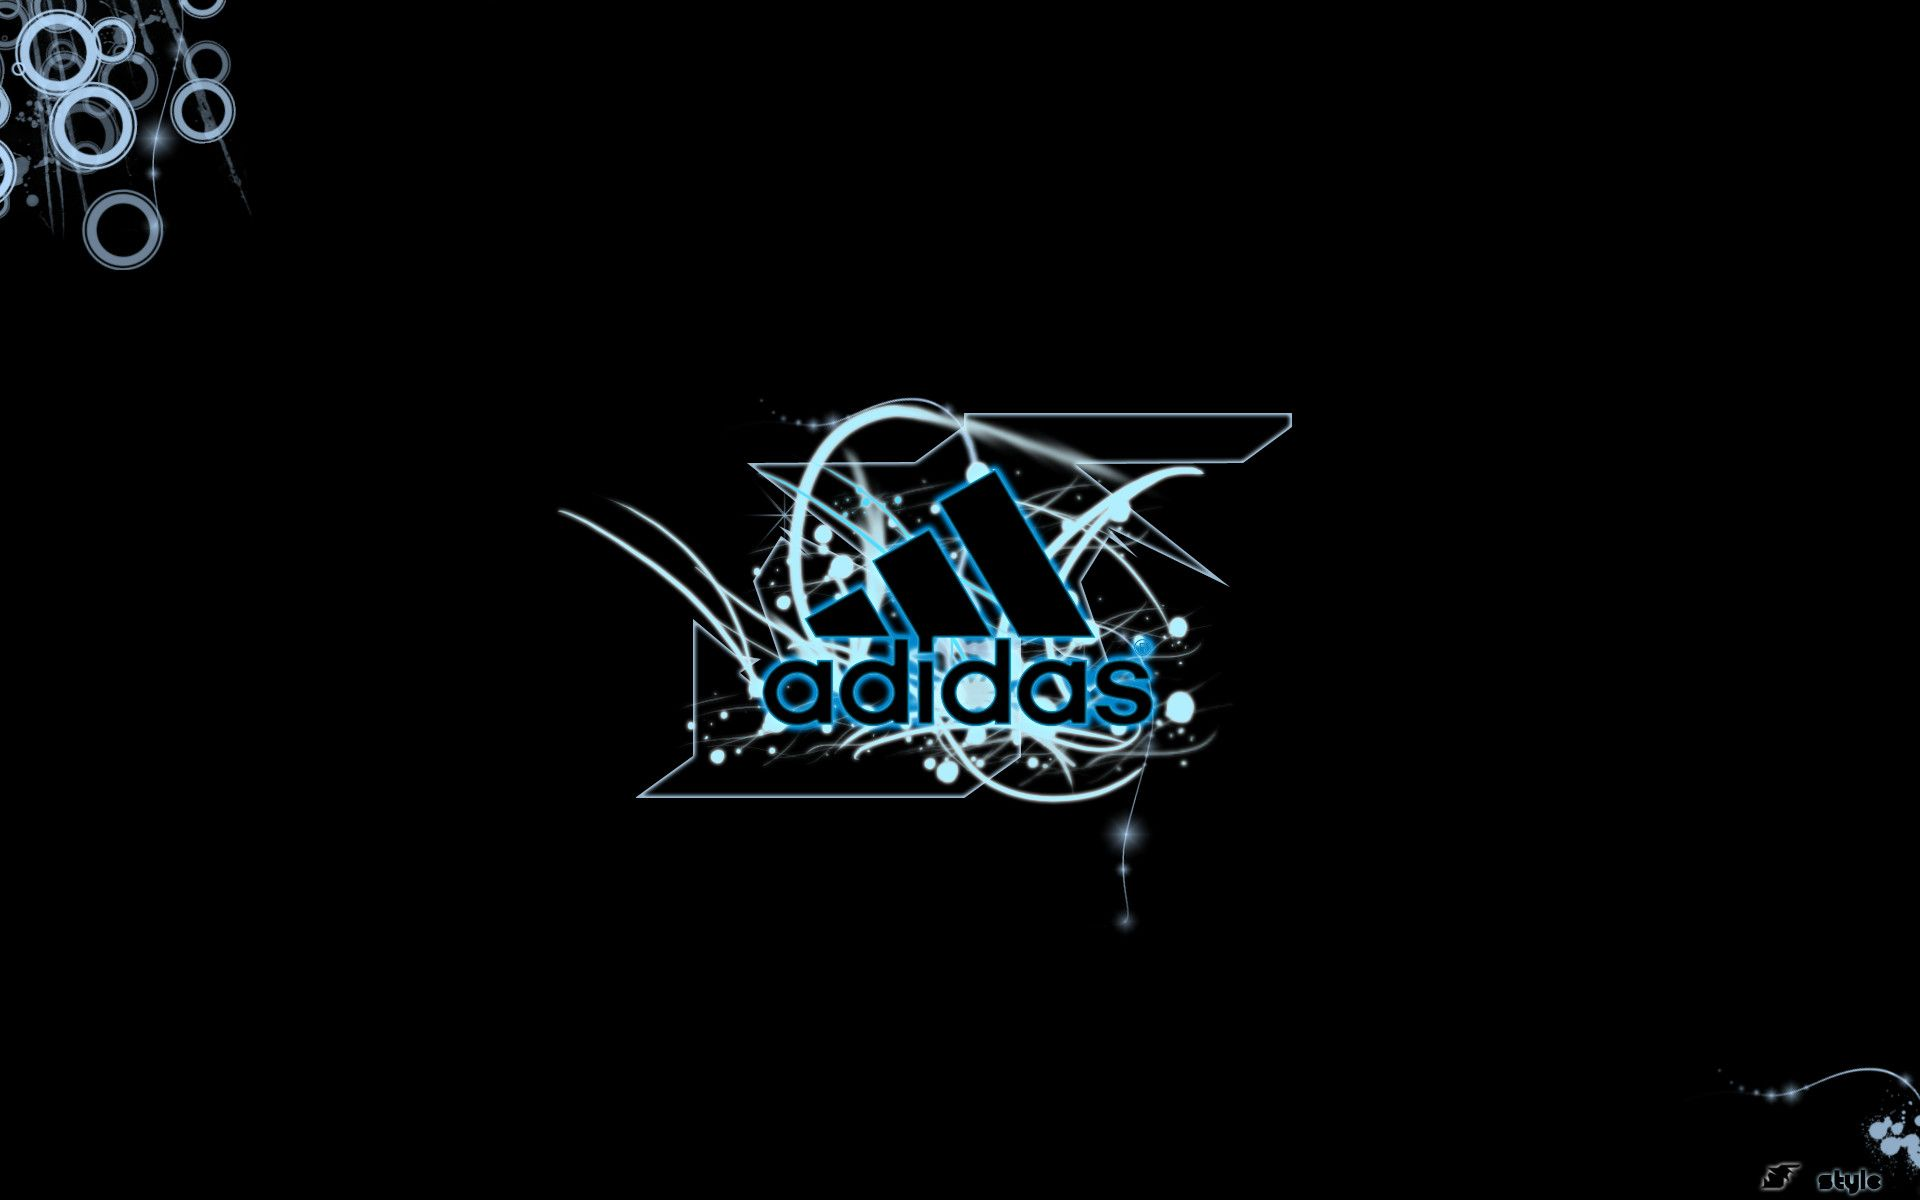 1920x1200 64+ Adidas Originals Wallpapers on WallpaperPlay